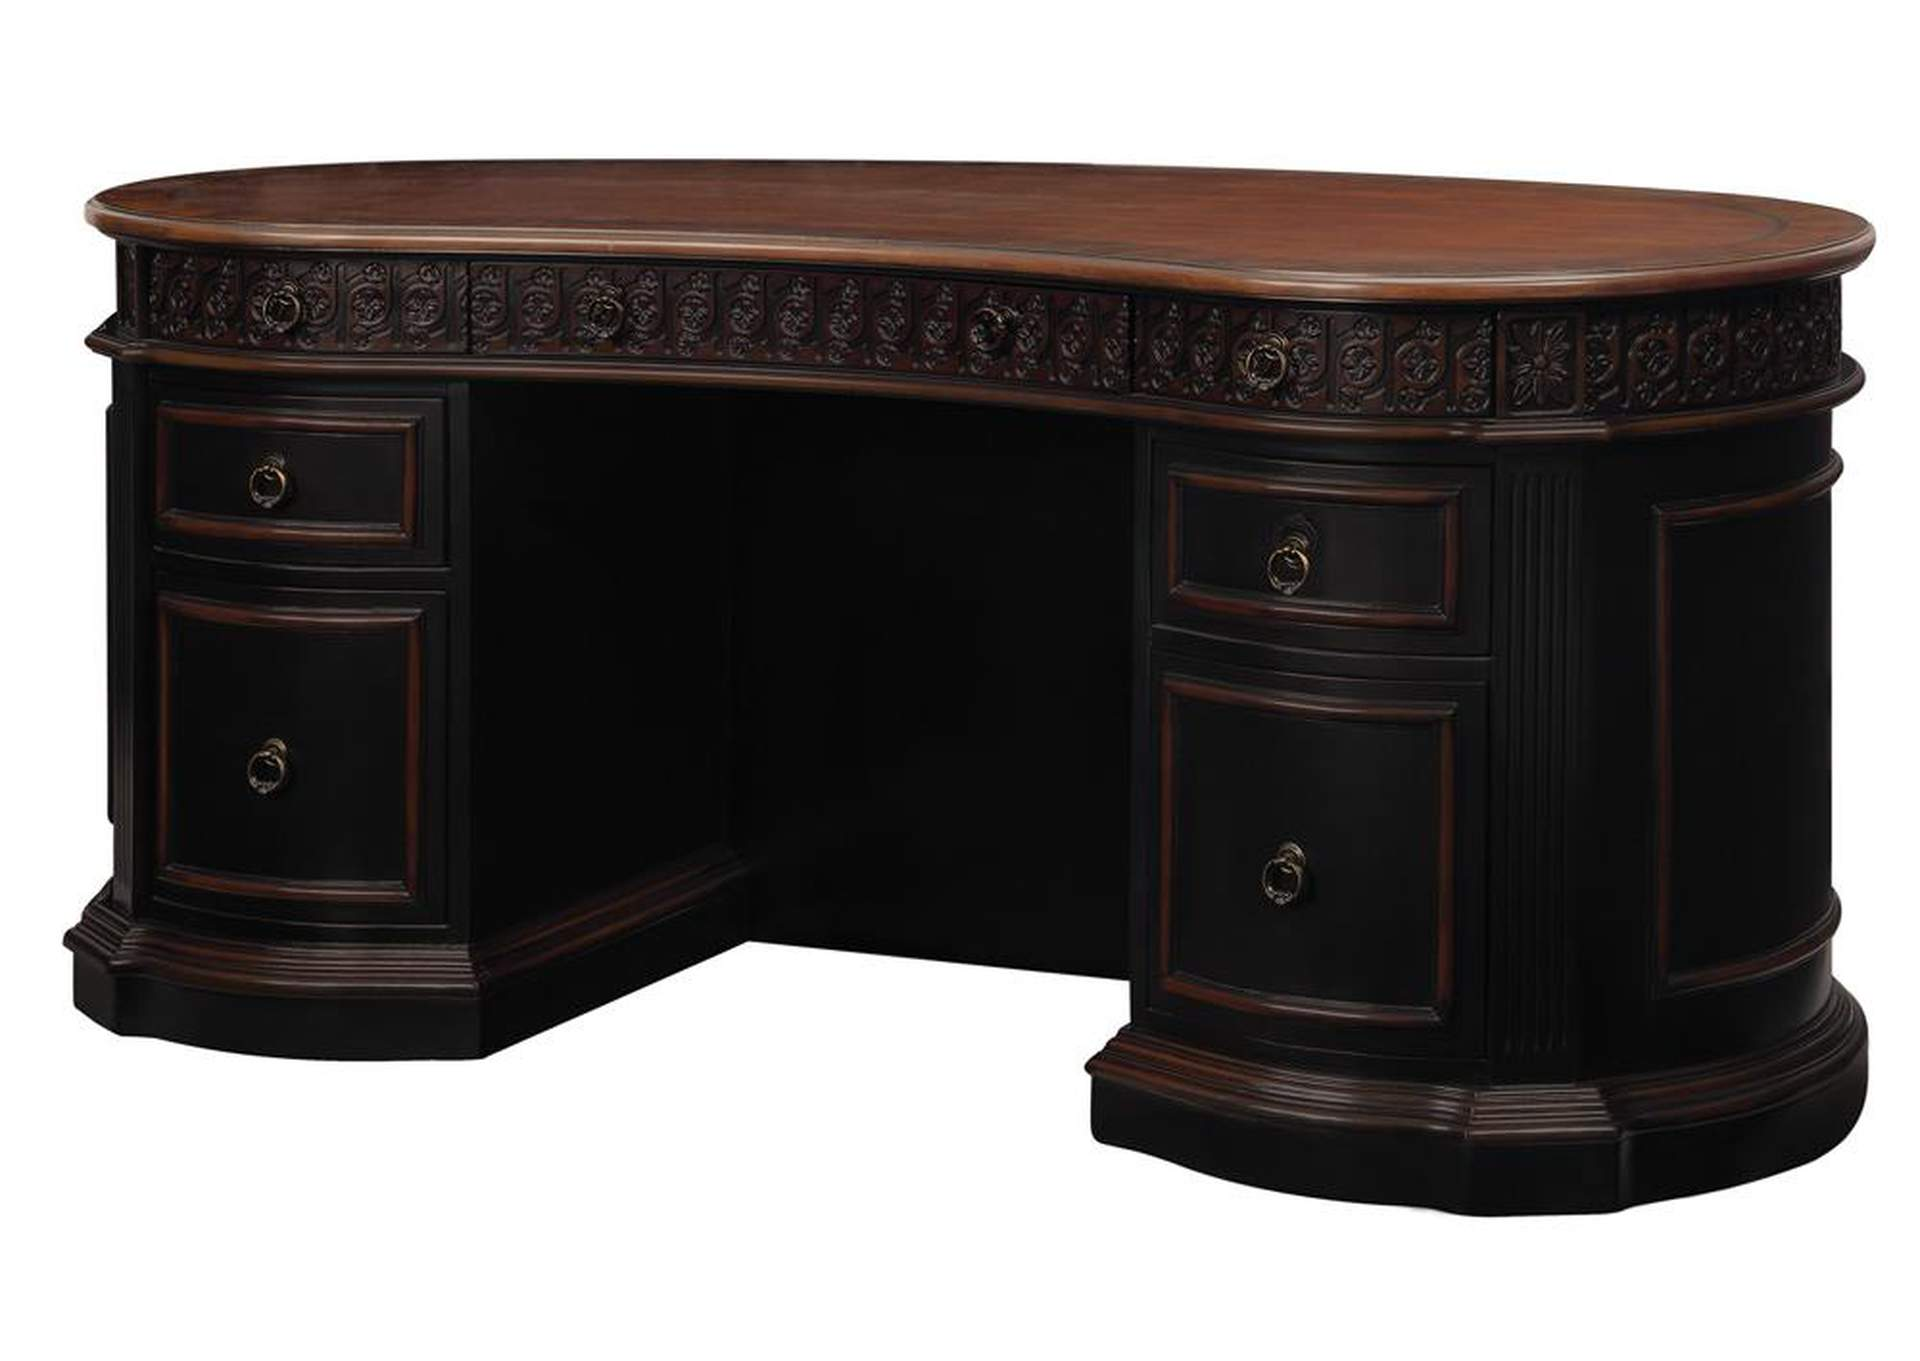 Two Tone Oval Desk,Coaster Furniture